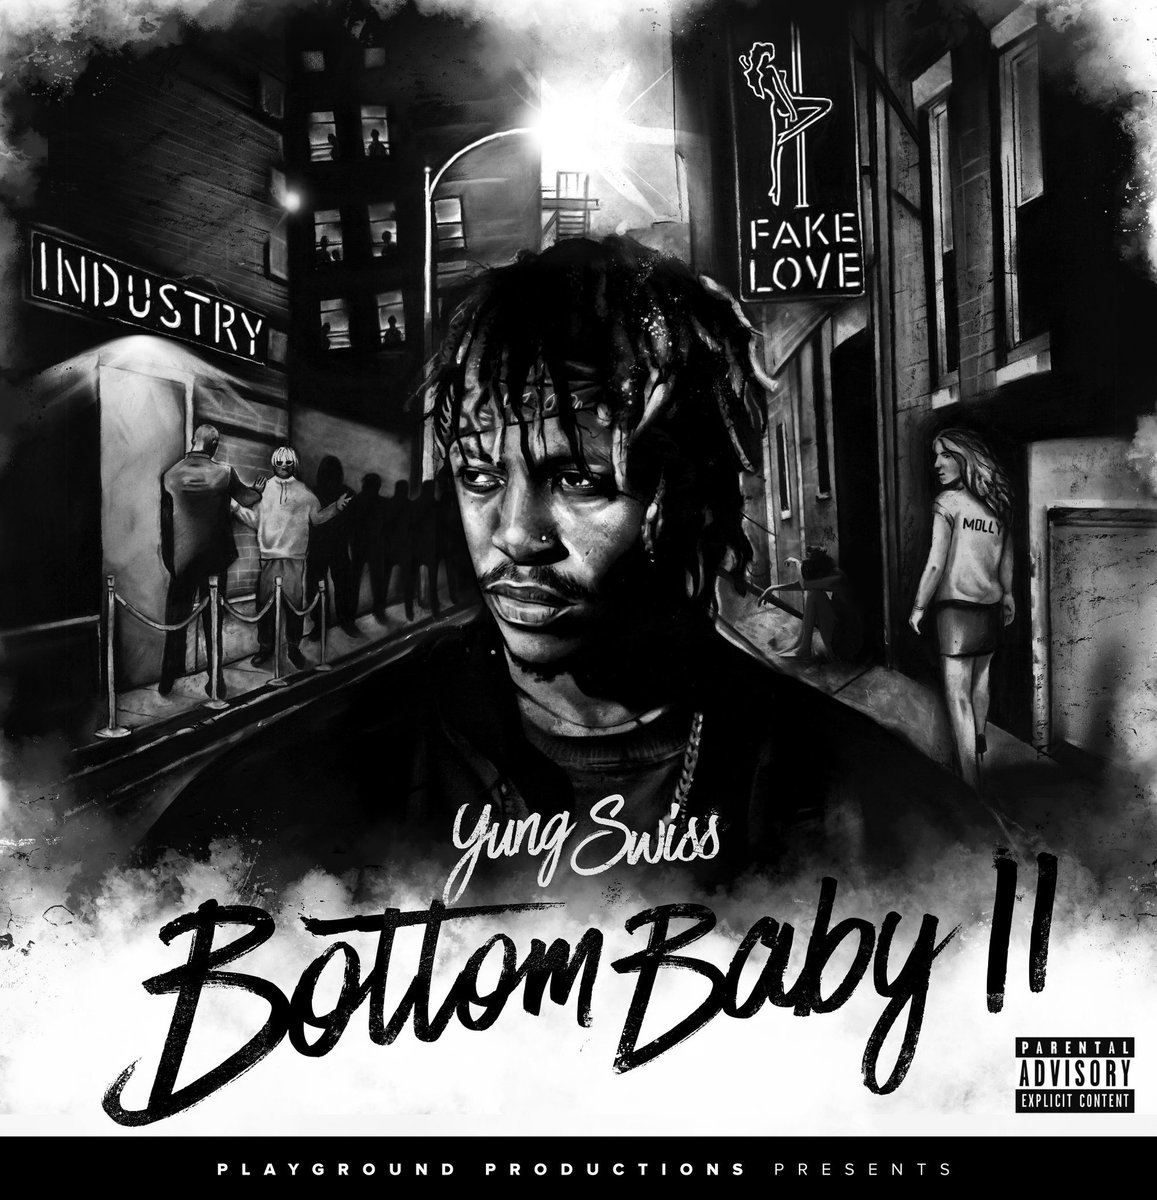 yung swiss Listen To Yung Swiss' New'Bottom Baby 2' Project DtGPn4OXoAAvWXT